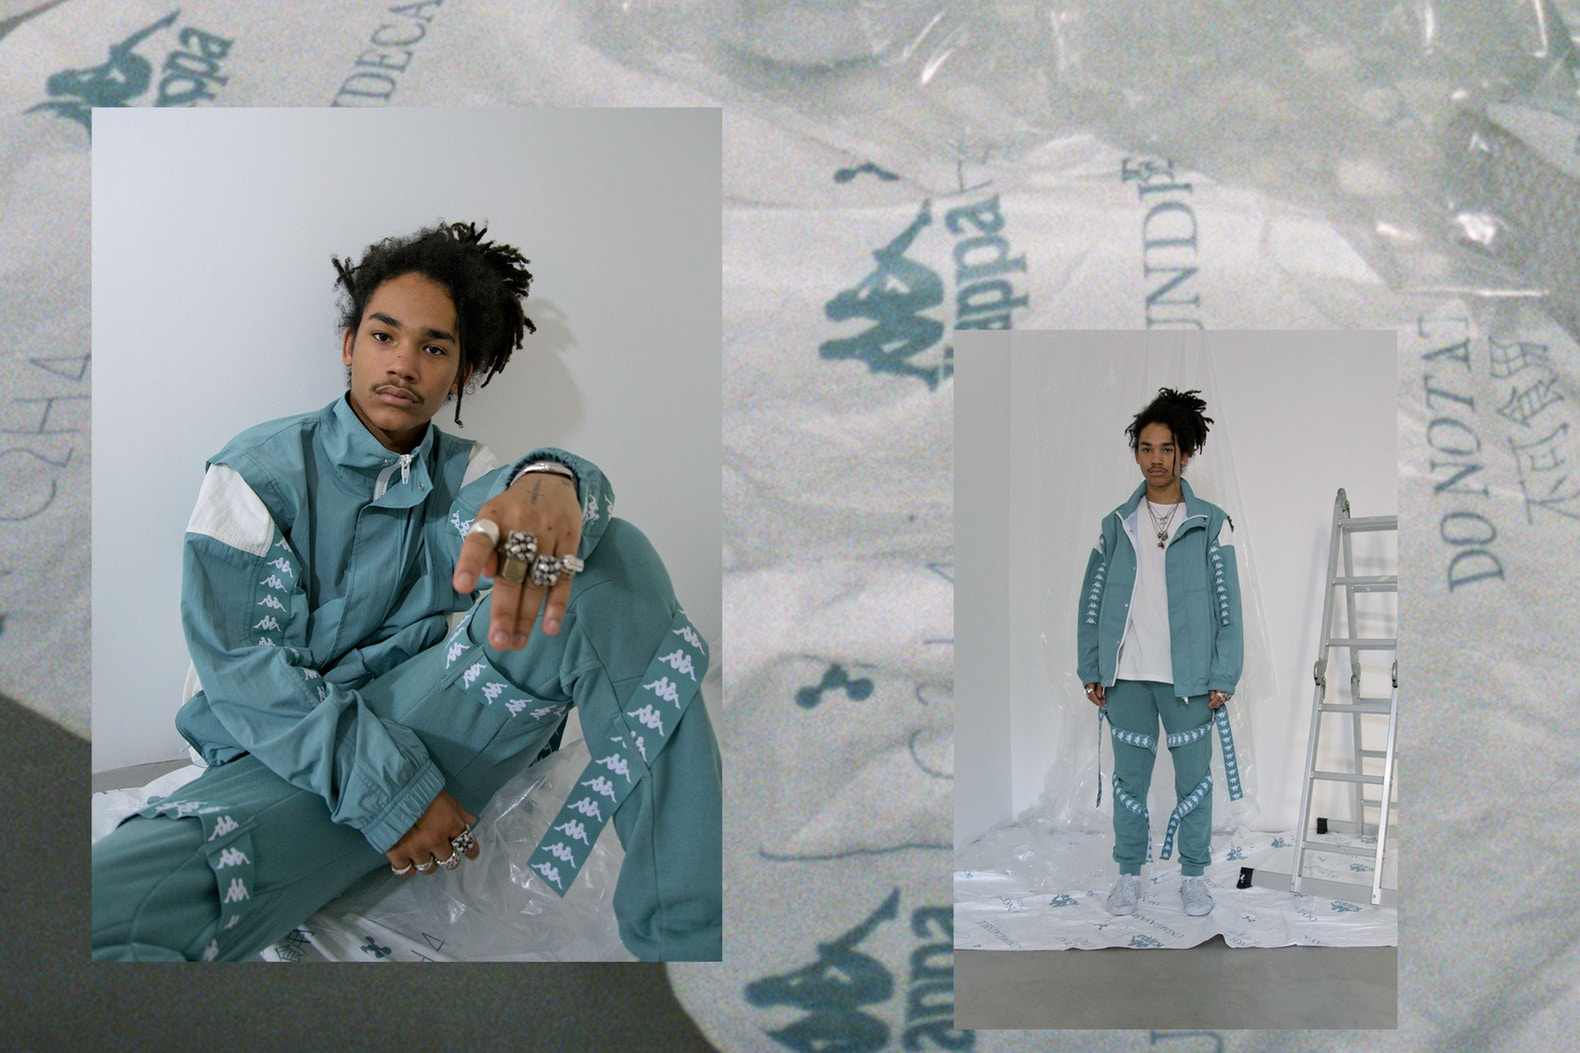 C2H4 et Kappa collaborent avec Luka Sabbat en shoot